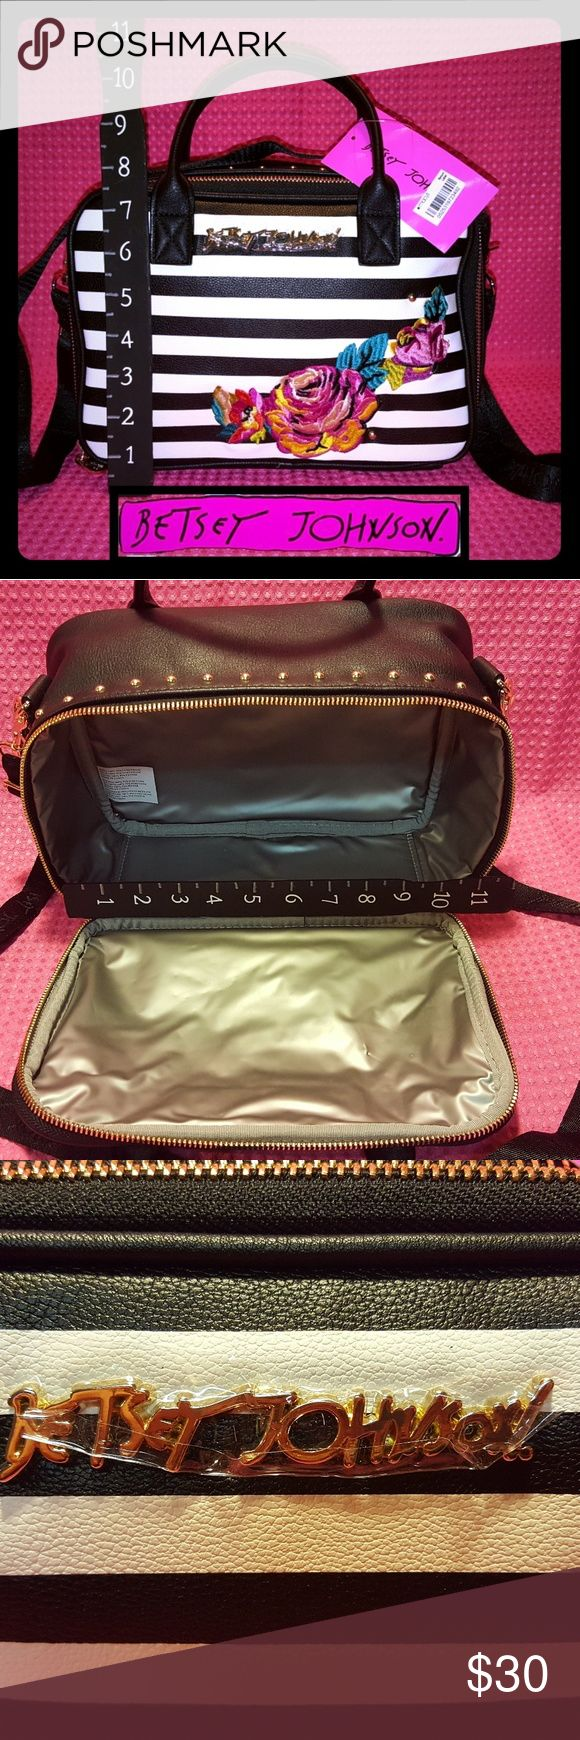 Betsey Johnson Embroidery Lunch Tote Insulated Lunch tote....Gold studs around top...Beautiful  multi-colored embroidered flowers... Can be carried with straps or crossbody strap Betsey Johnson Bags Totes